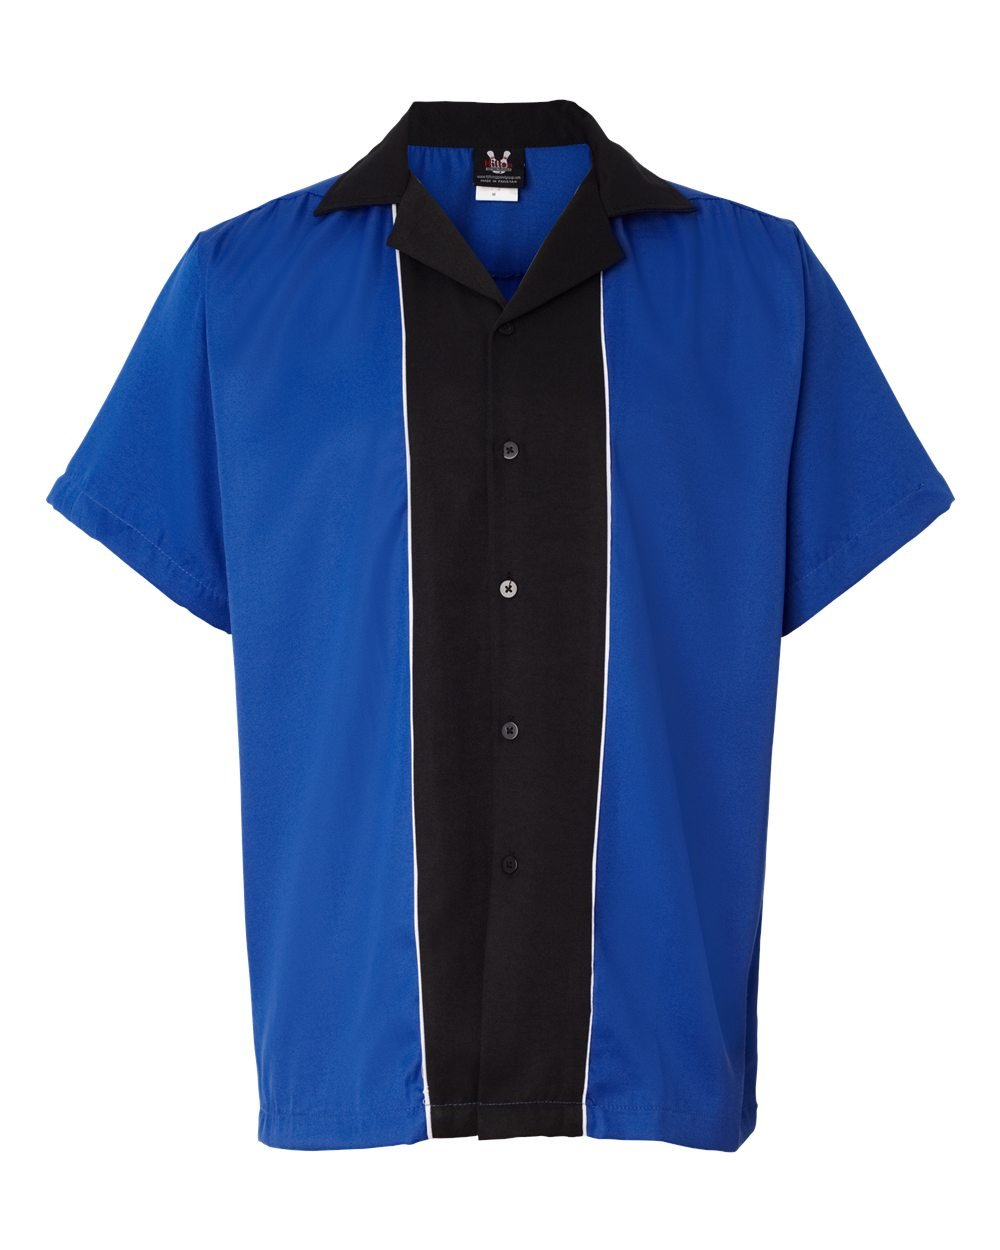 Hilton Men's Retro Quest Bowling Shirt, Royal/ Black, XXX-Large by Hilton